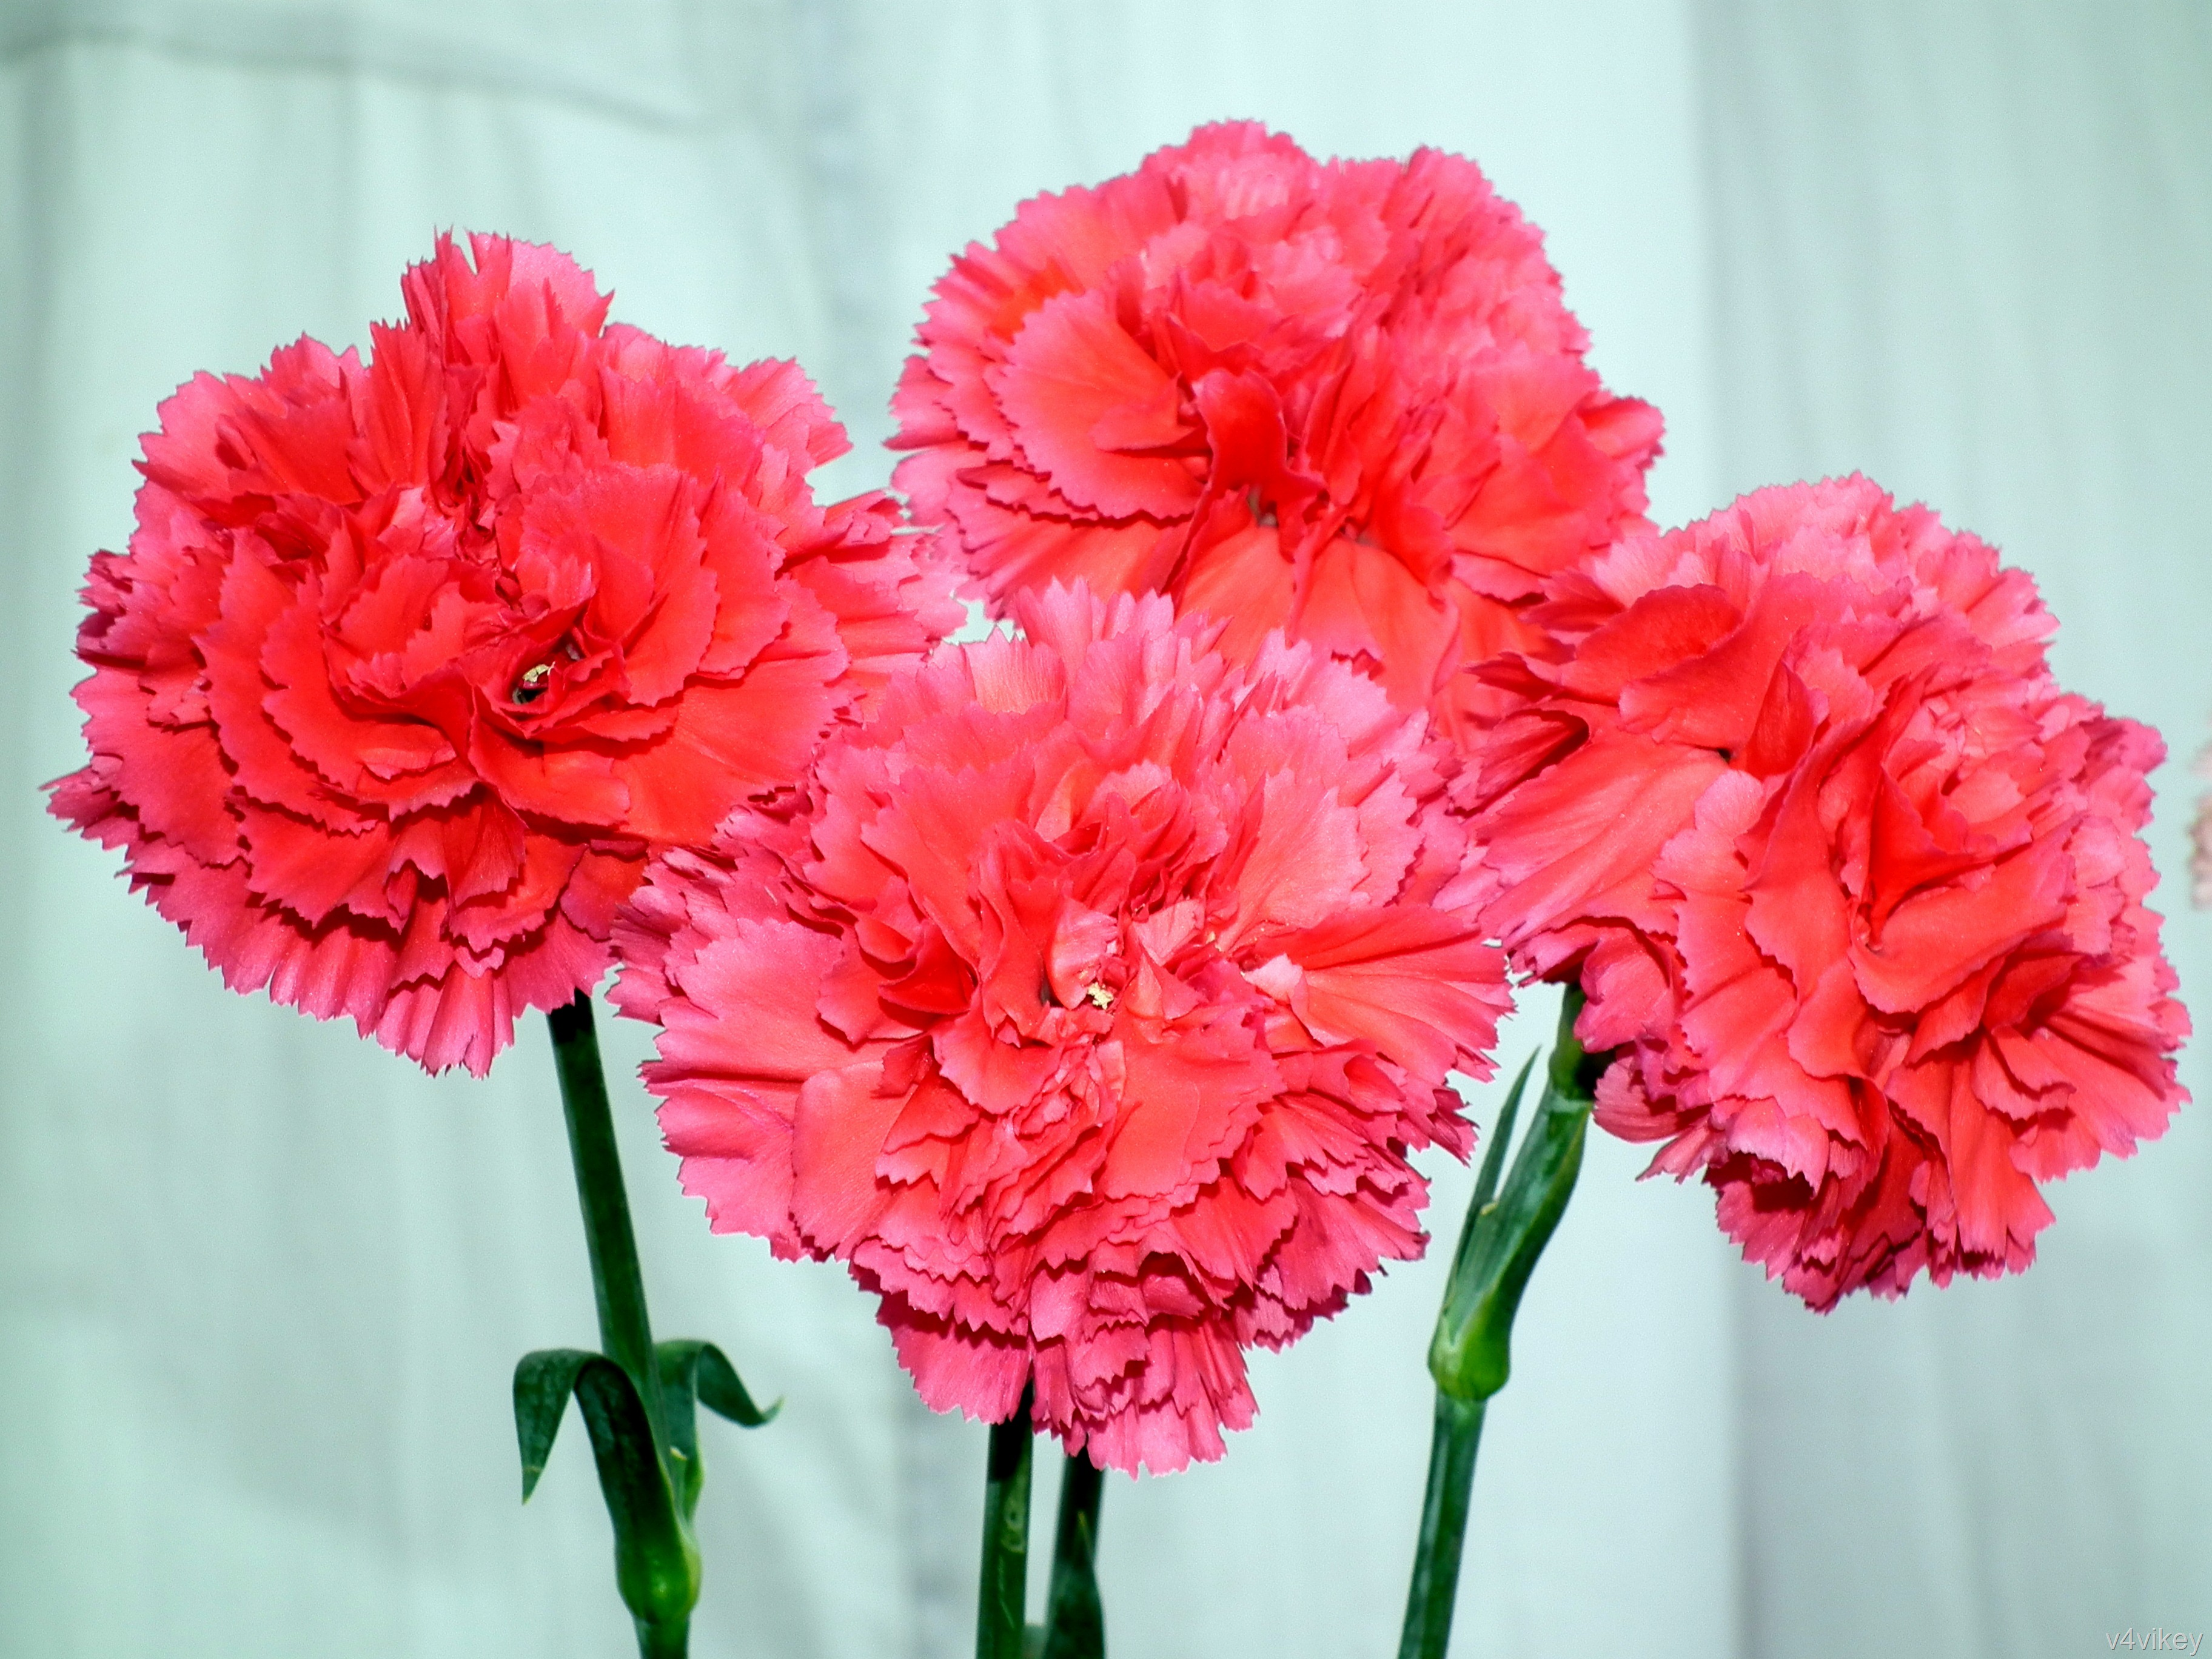 carnation online dating You can make online dating less depressing if only you change your mindset on the whole ordeal this isn't meg ryan in you've got mail waiting with a carnation at a coffee shop while looking.